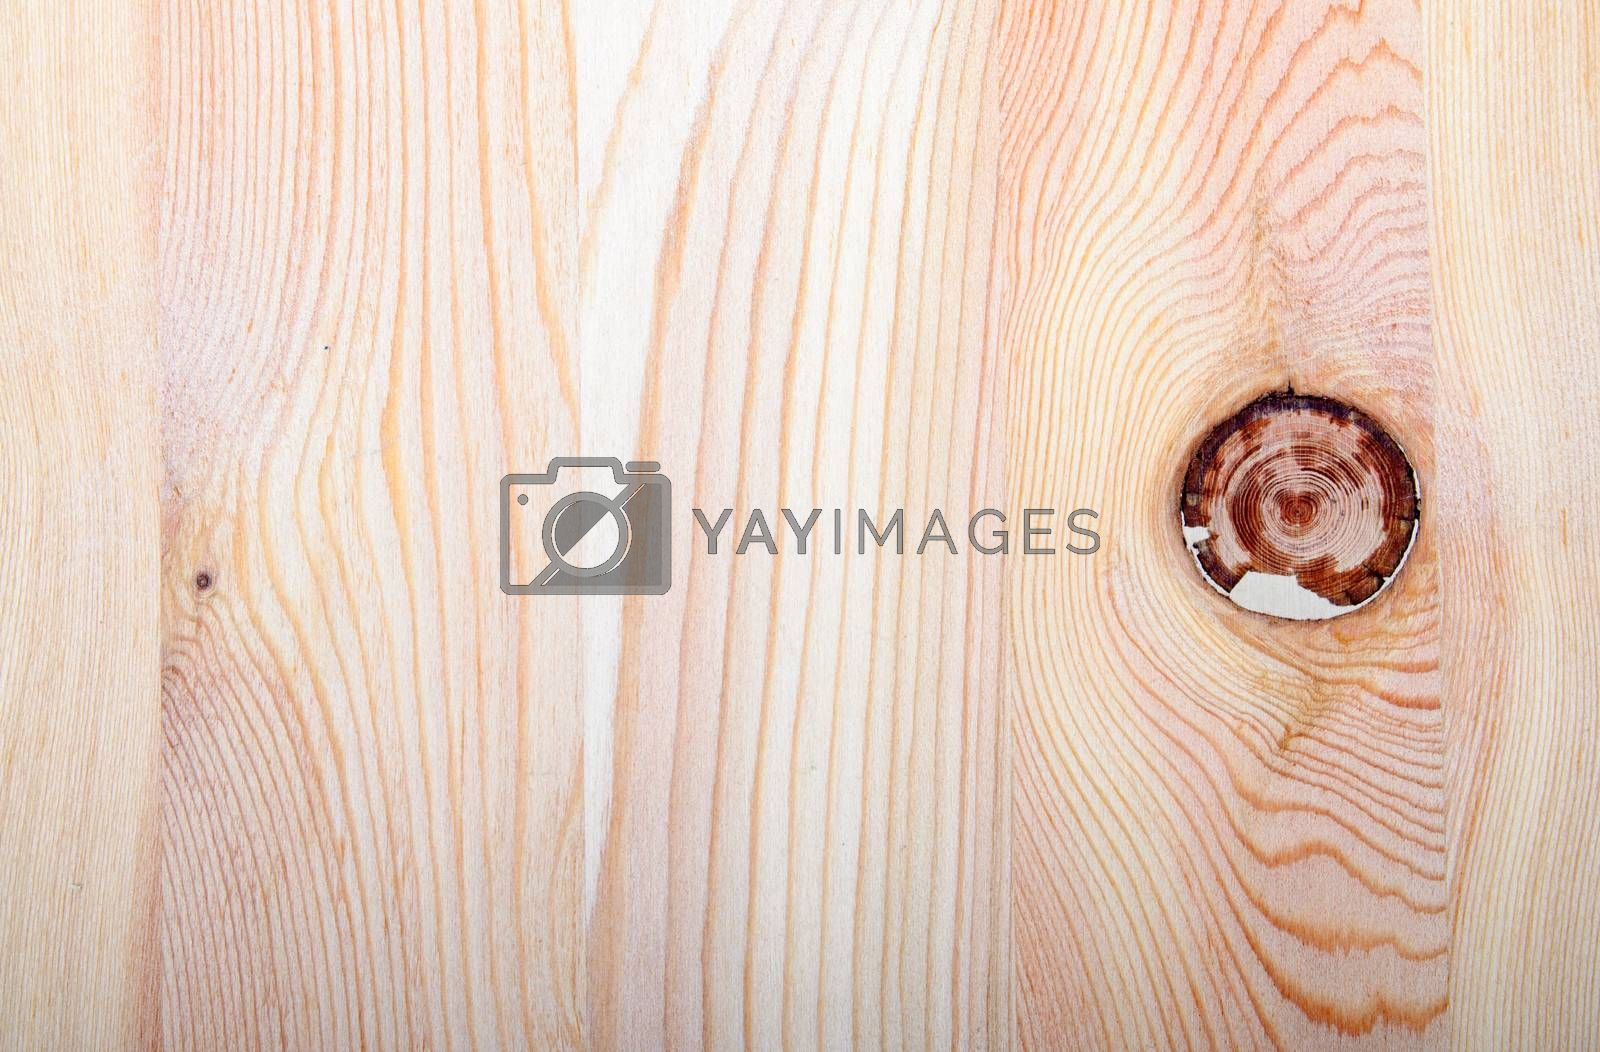 An image of part of wooden timber